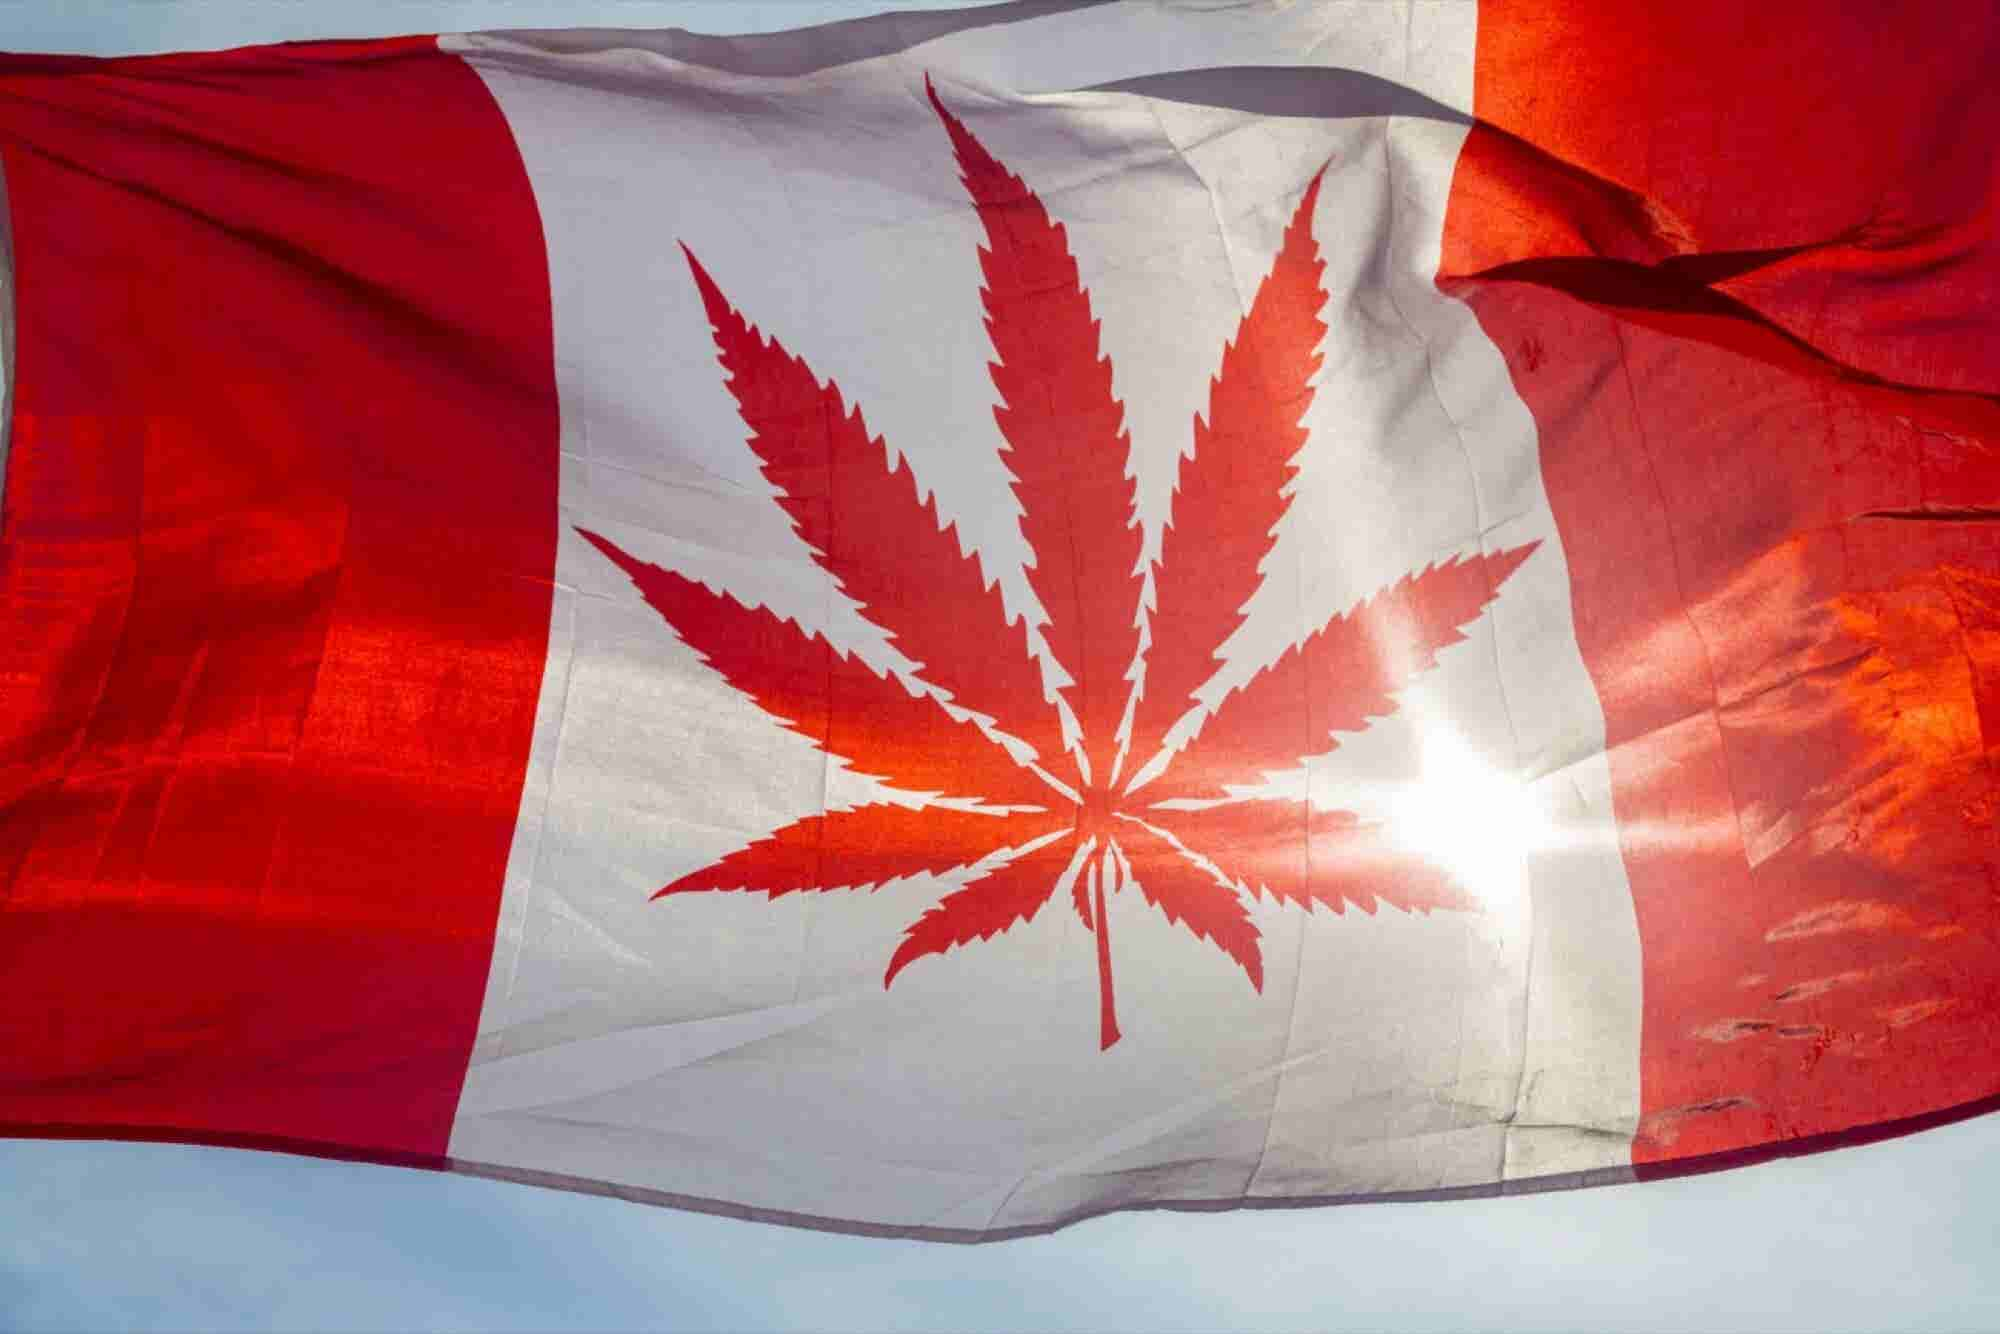 Legalize or Demonize: Leaders in Canada, US Have Very Different Views...